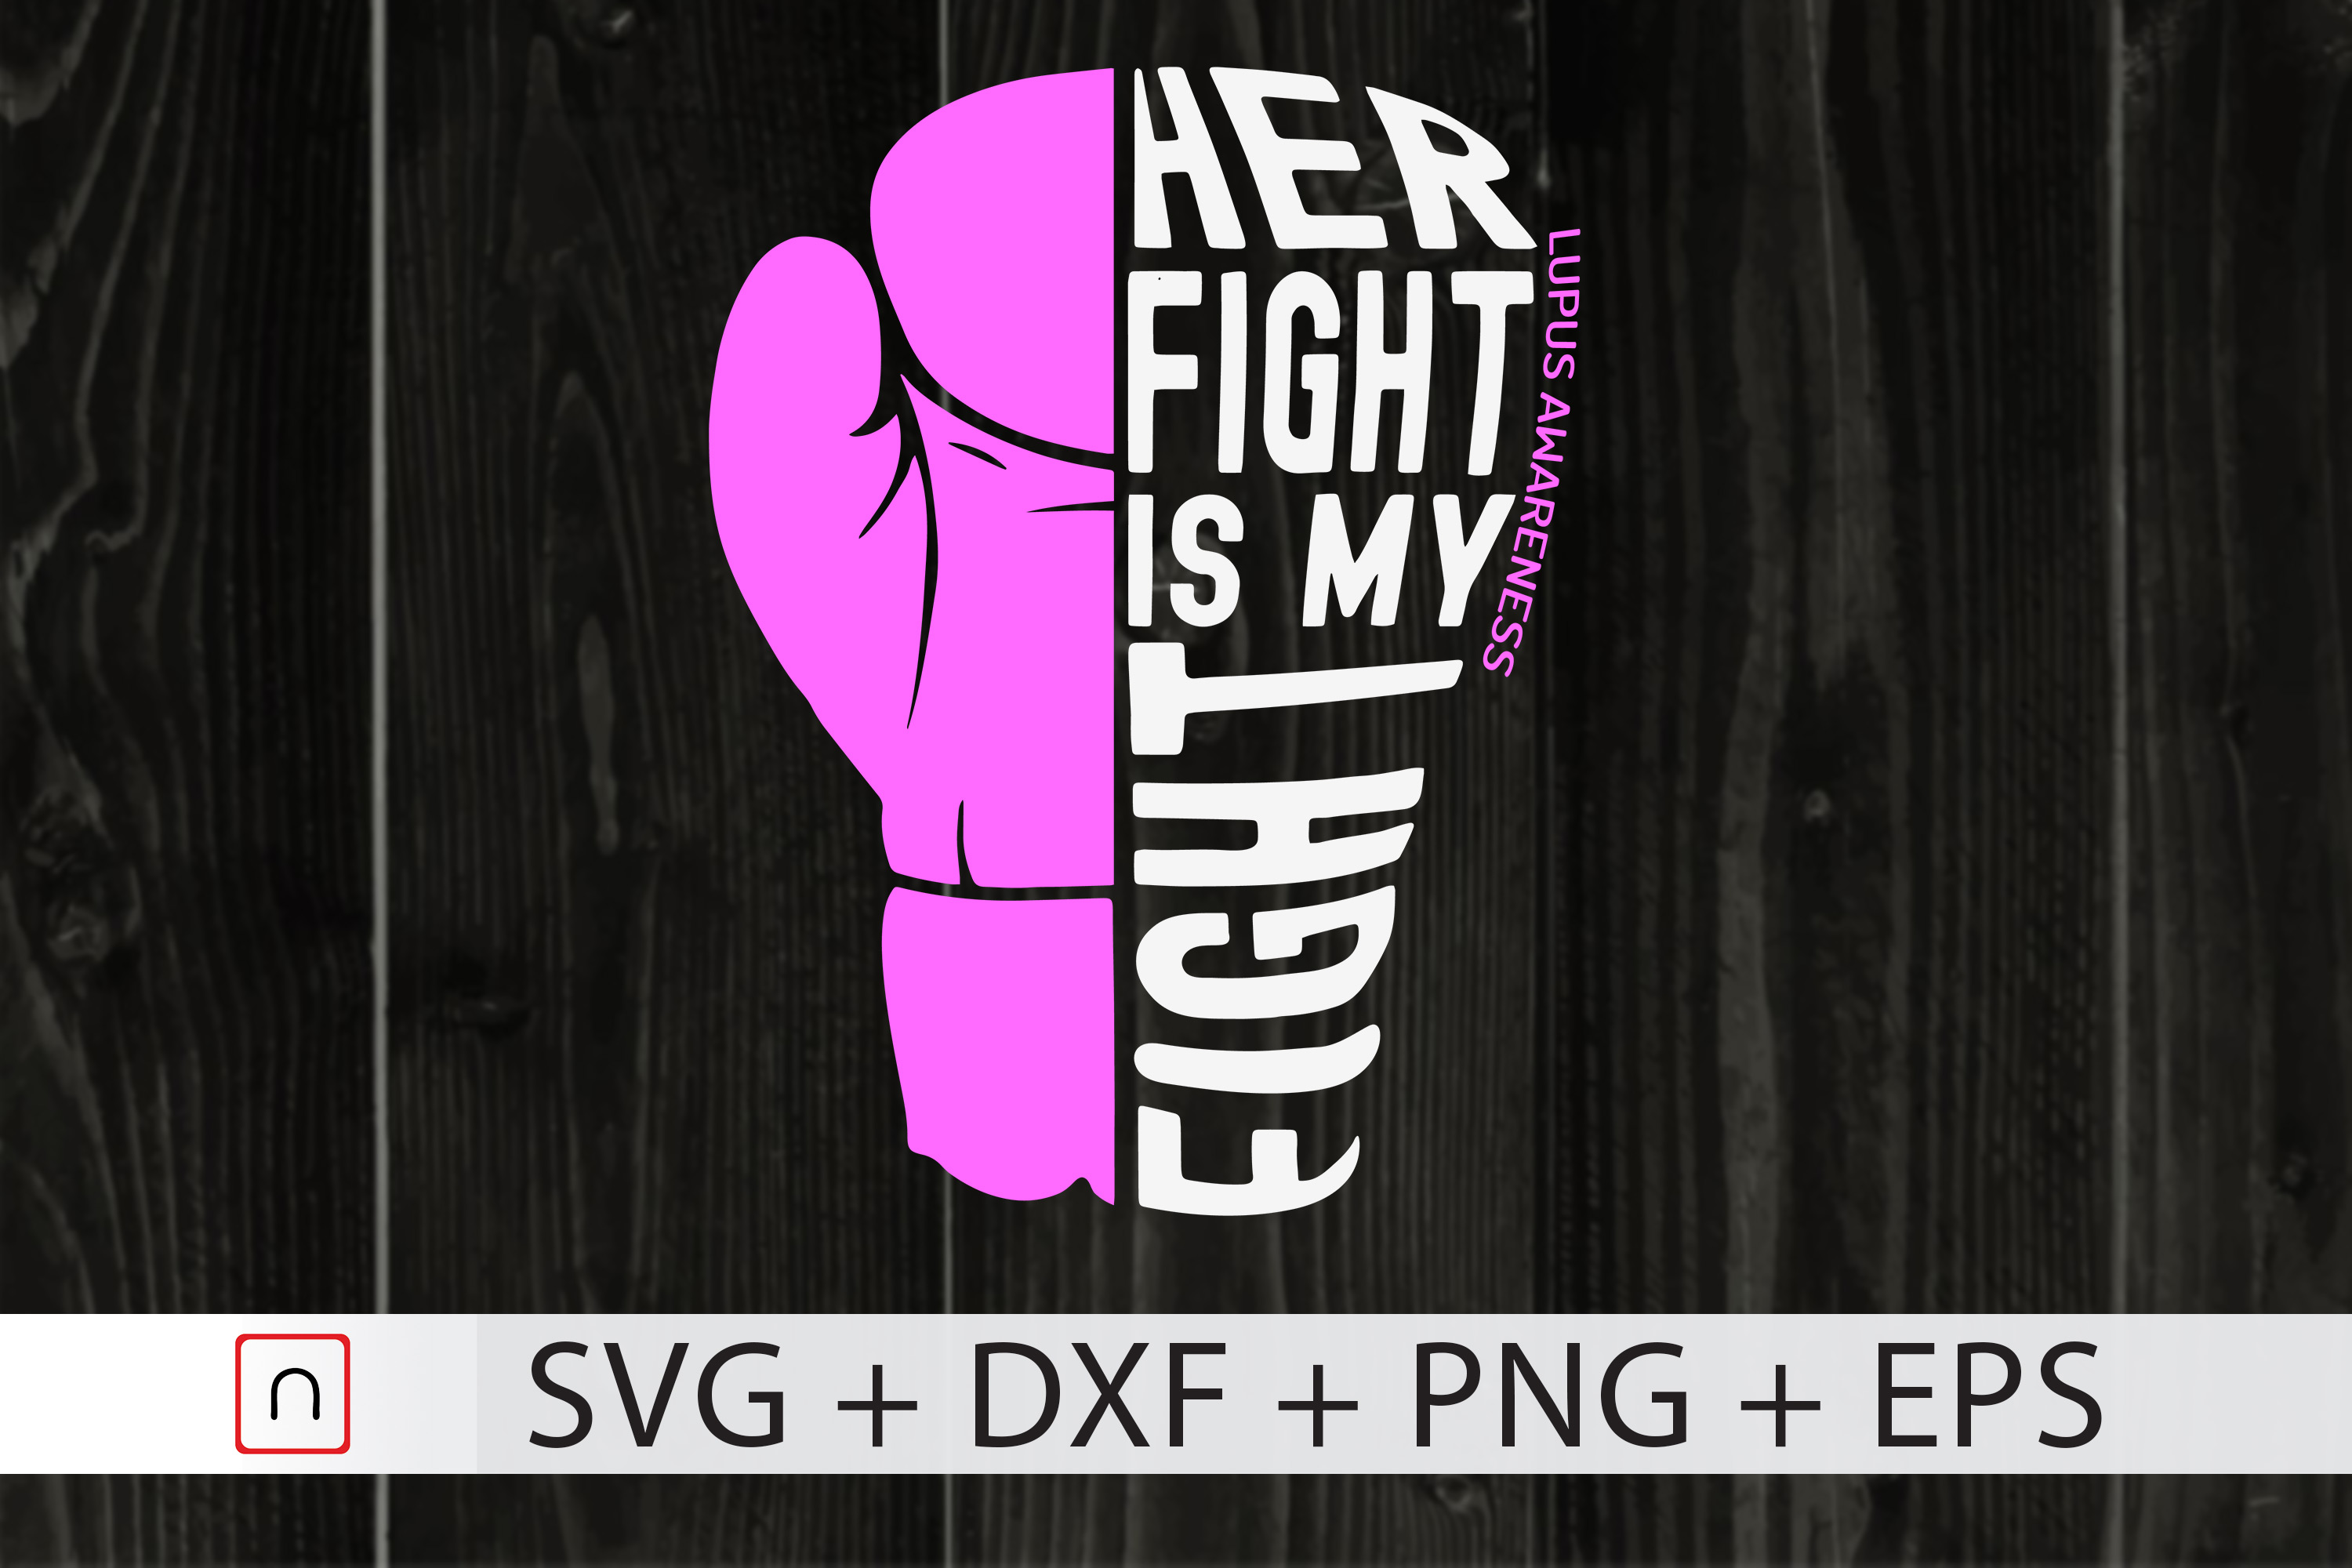 Download Free Her Fight Is My Fight Lupus Graphic By Novalia Creative Fabrica for Cricut Explore, Silhouette and other cutting machines.